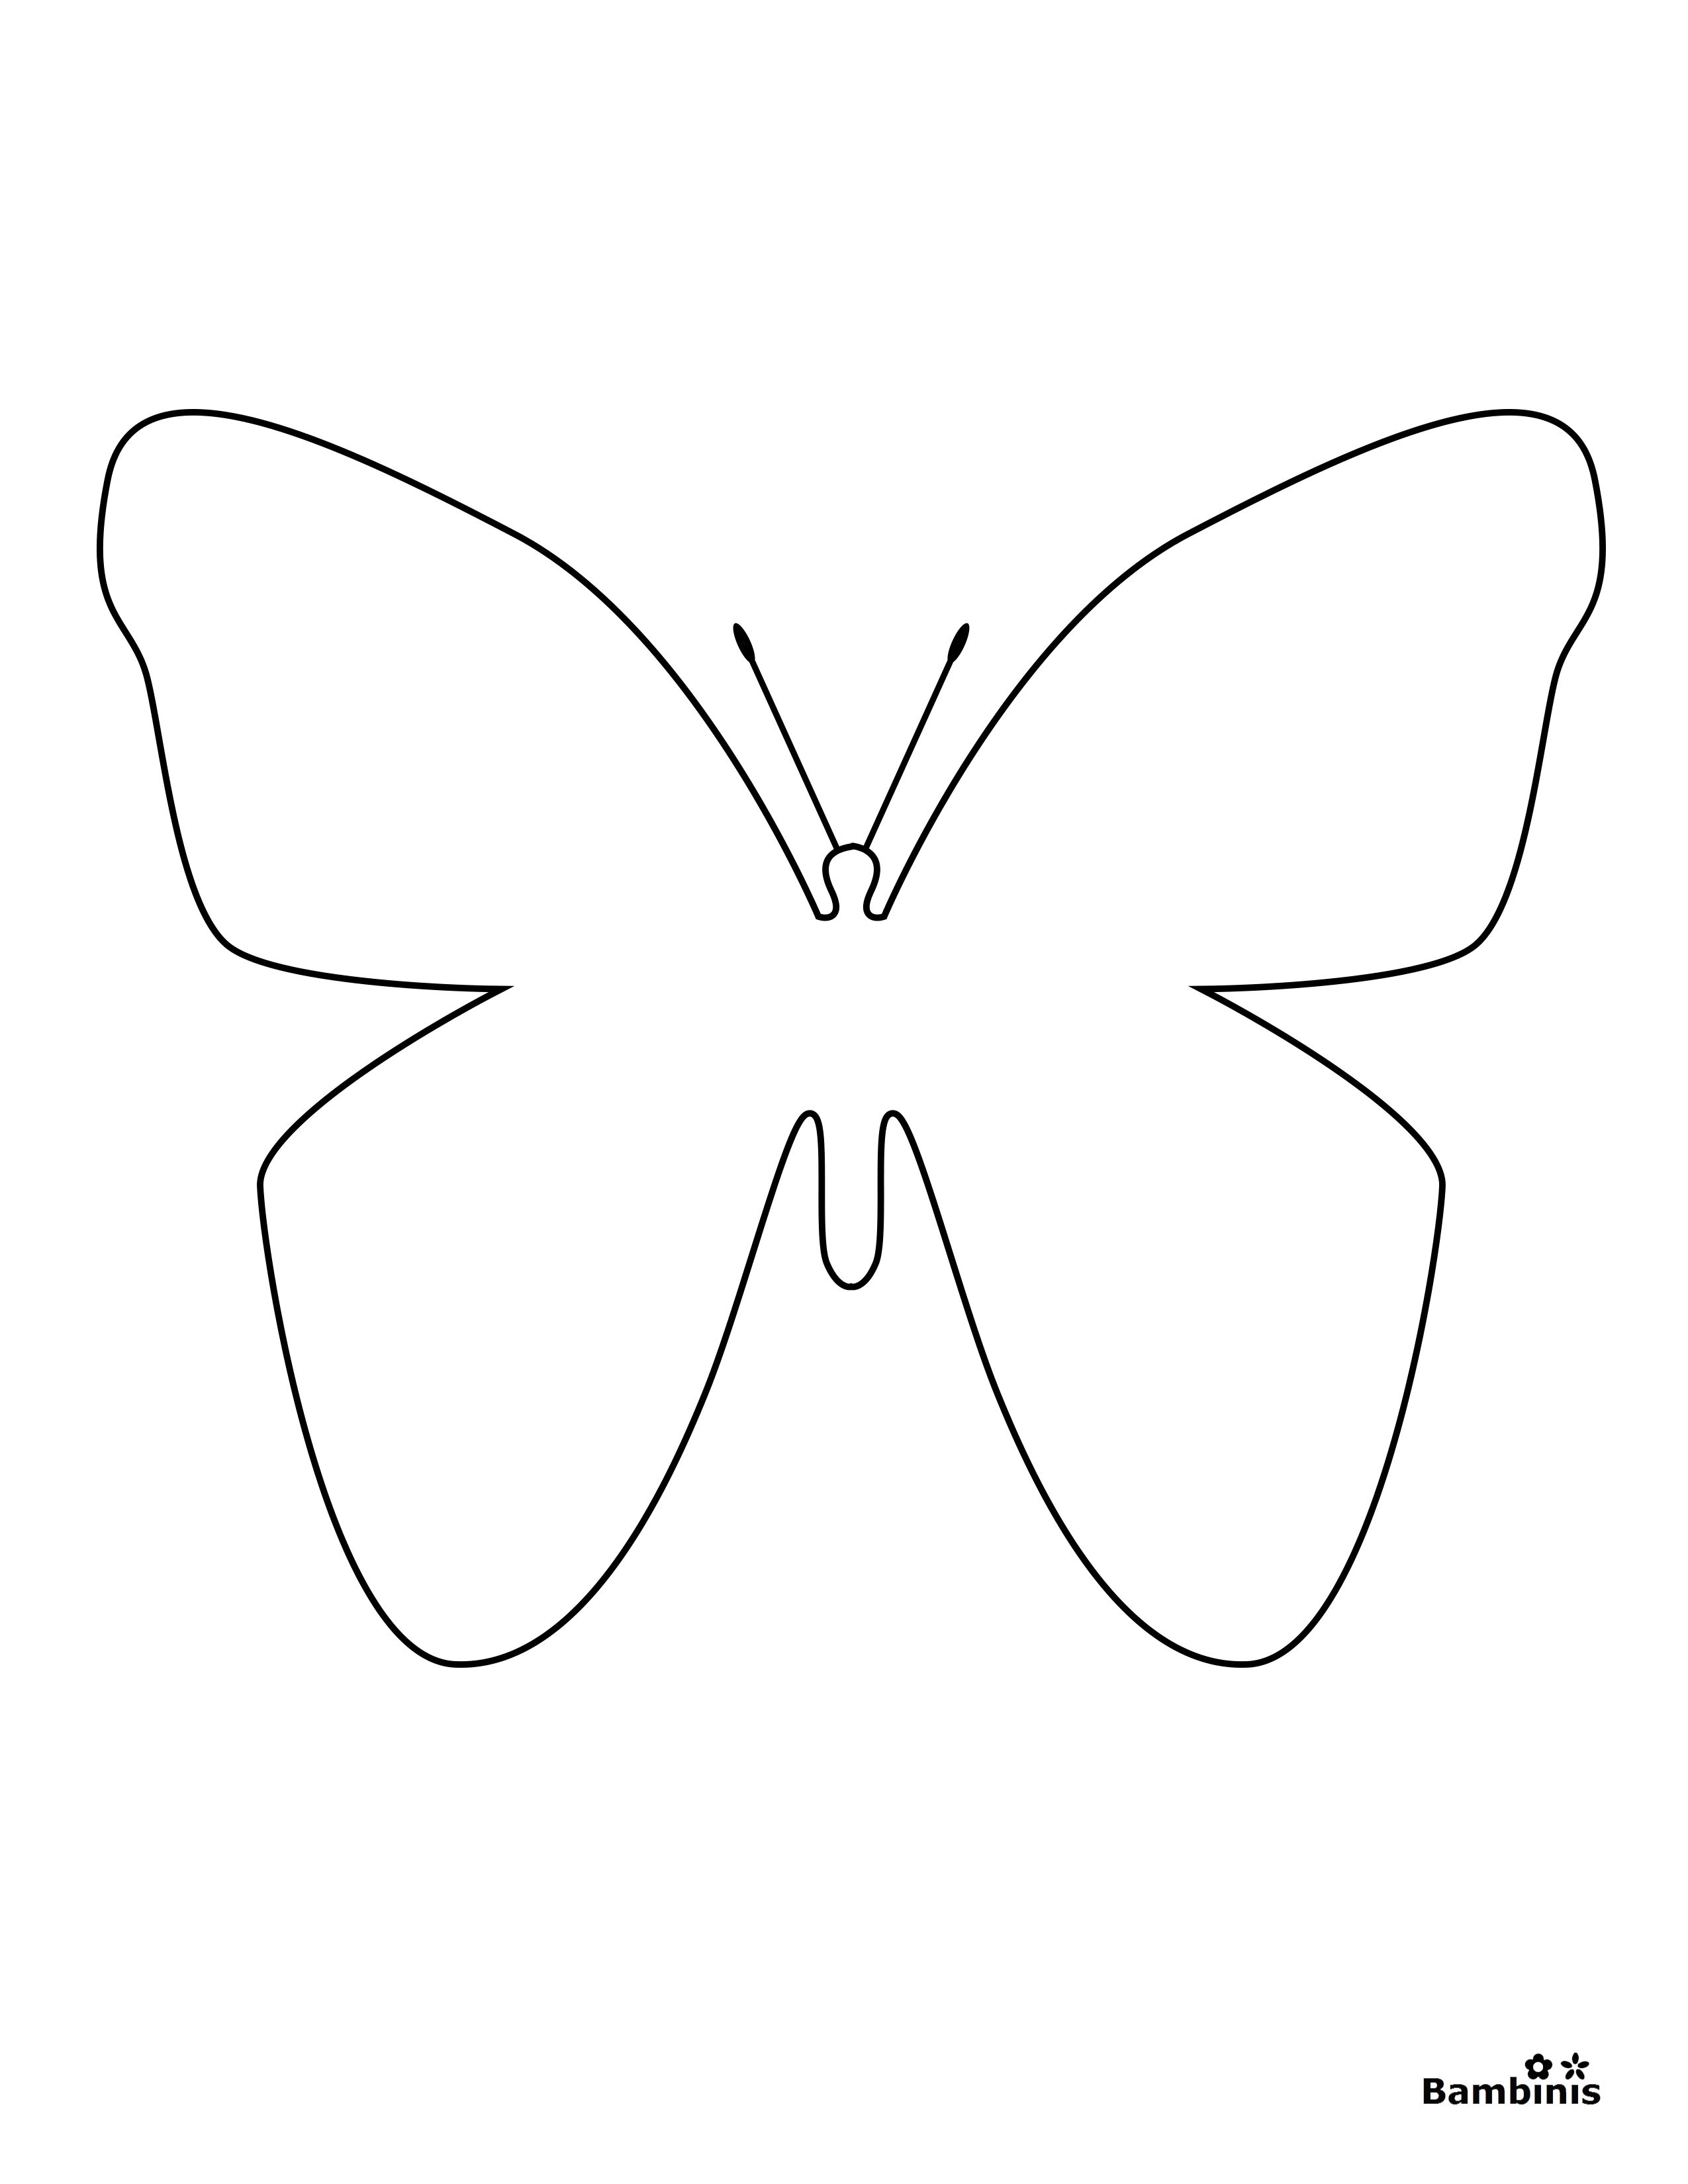 Images For Simple Butterfly Coloring Sheet Butterfly Coloring Page Simple Butterfly Easy Coloring Pages